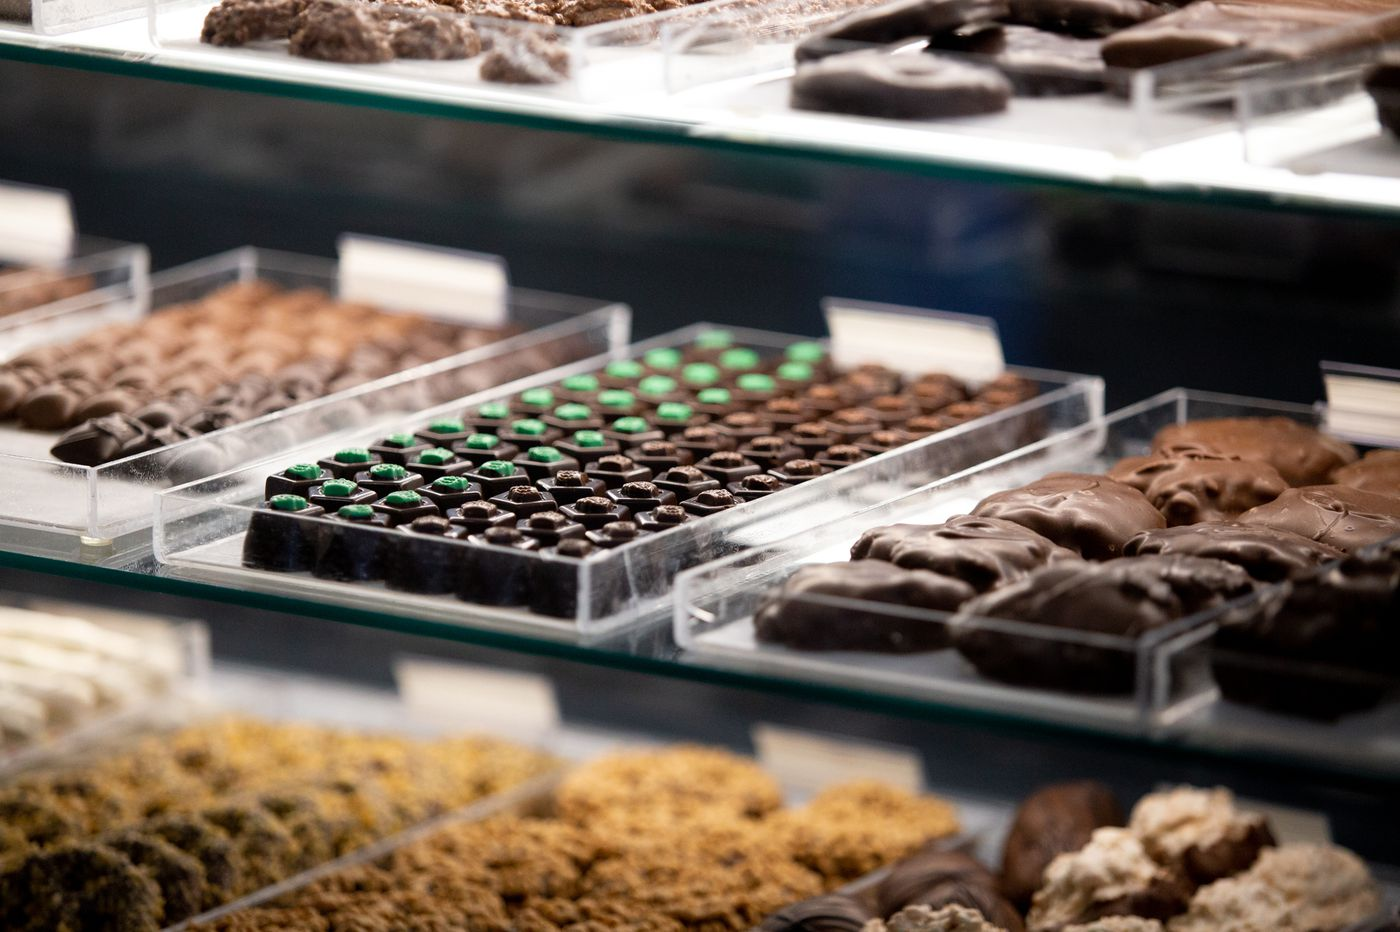 Chocolate is 'decadent and mystical.' Here's how the professionals learn its secrets.